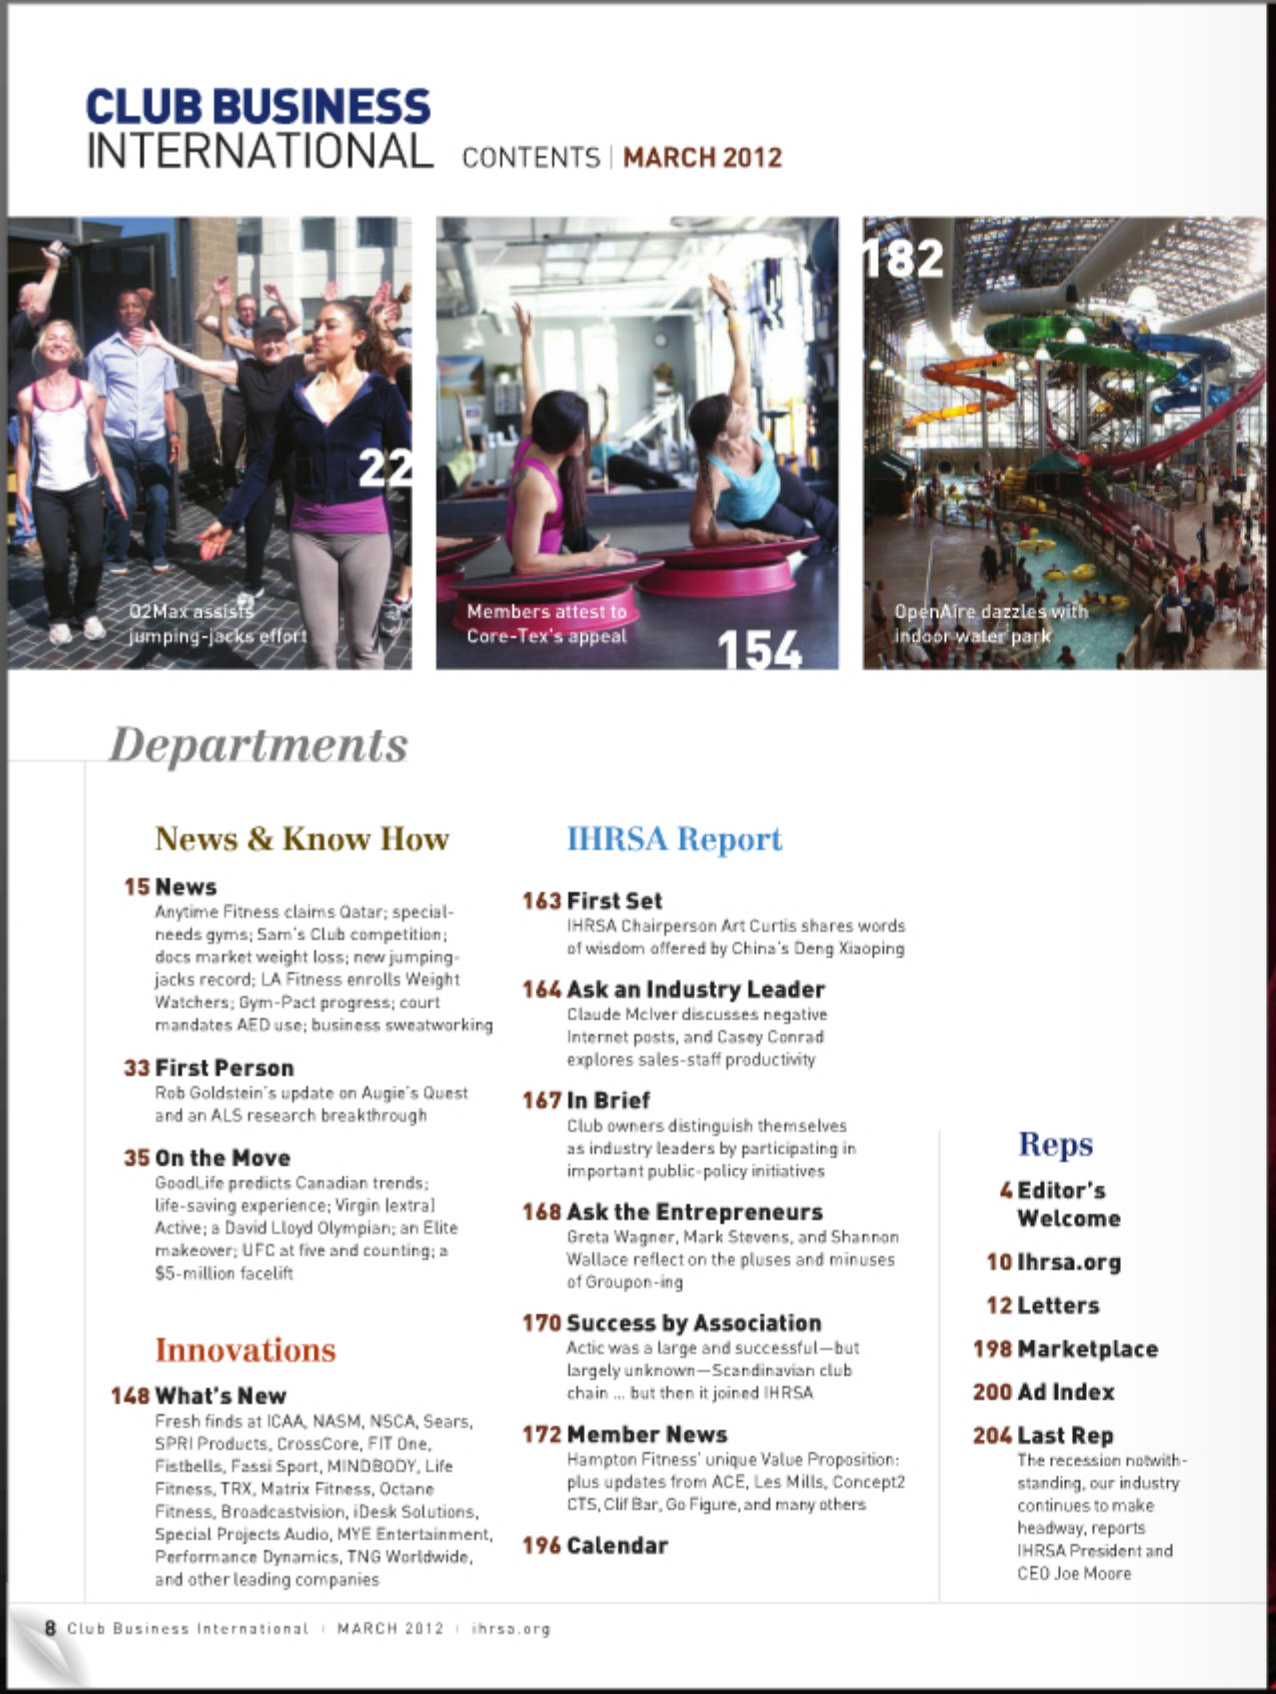 CLUB BUSINESS INTERNATIONAL MAGAZINE, MARCH 2012: Innovations: Members Attest to Core-Tex's Appeal